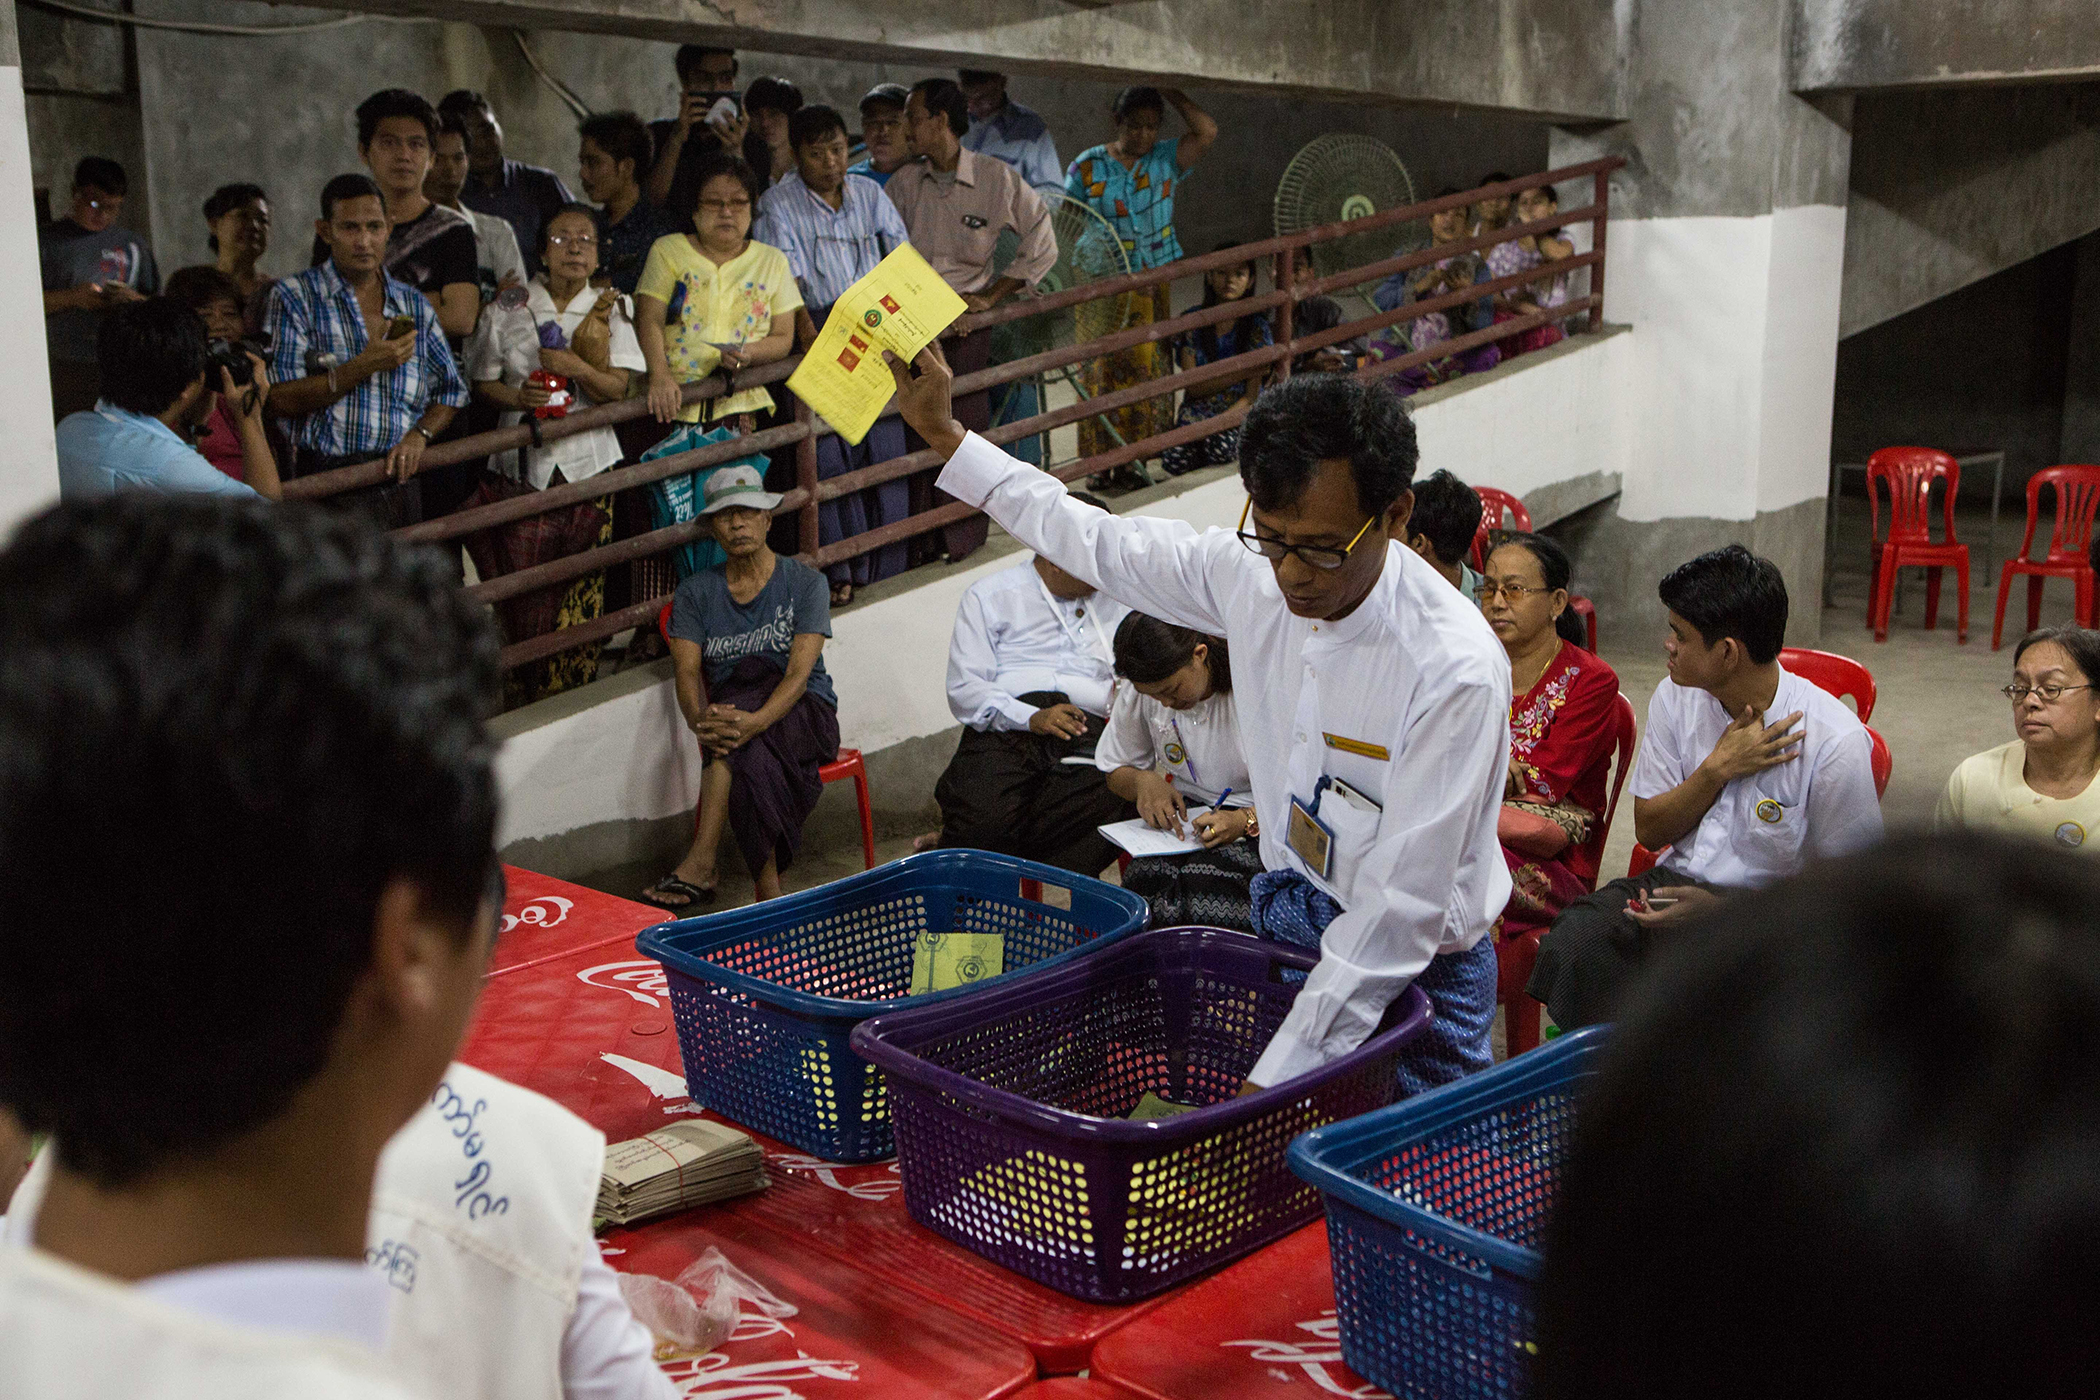 Votes are counted in an unfinished building being used as a polling station in Yangon on Nov. 8, 2015.